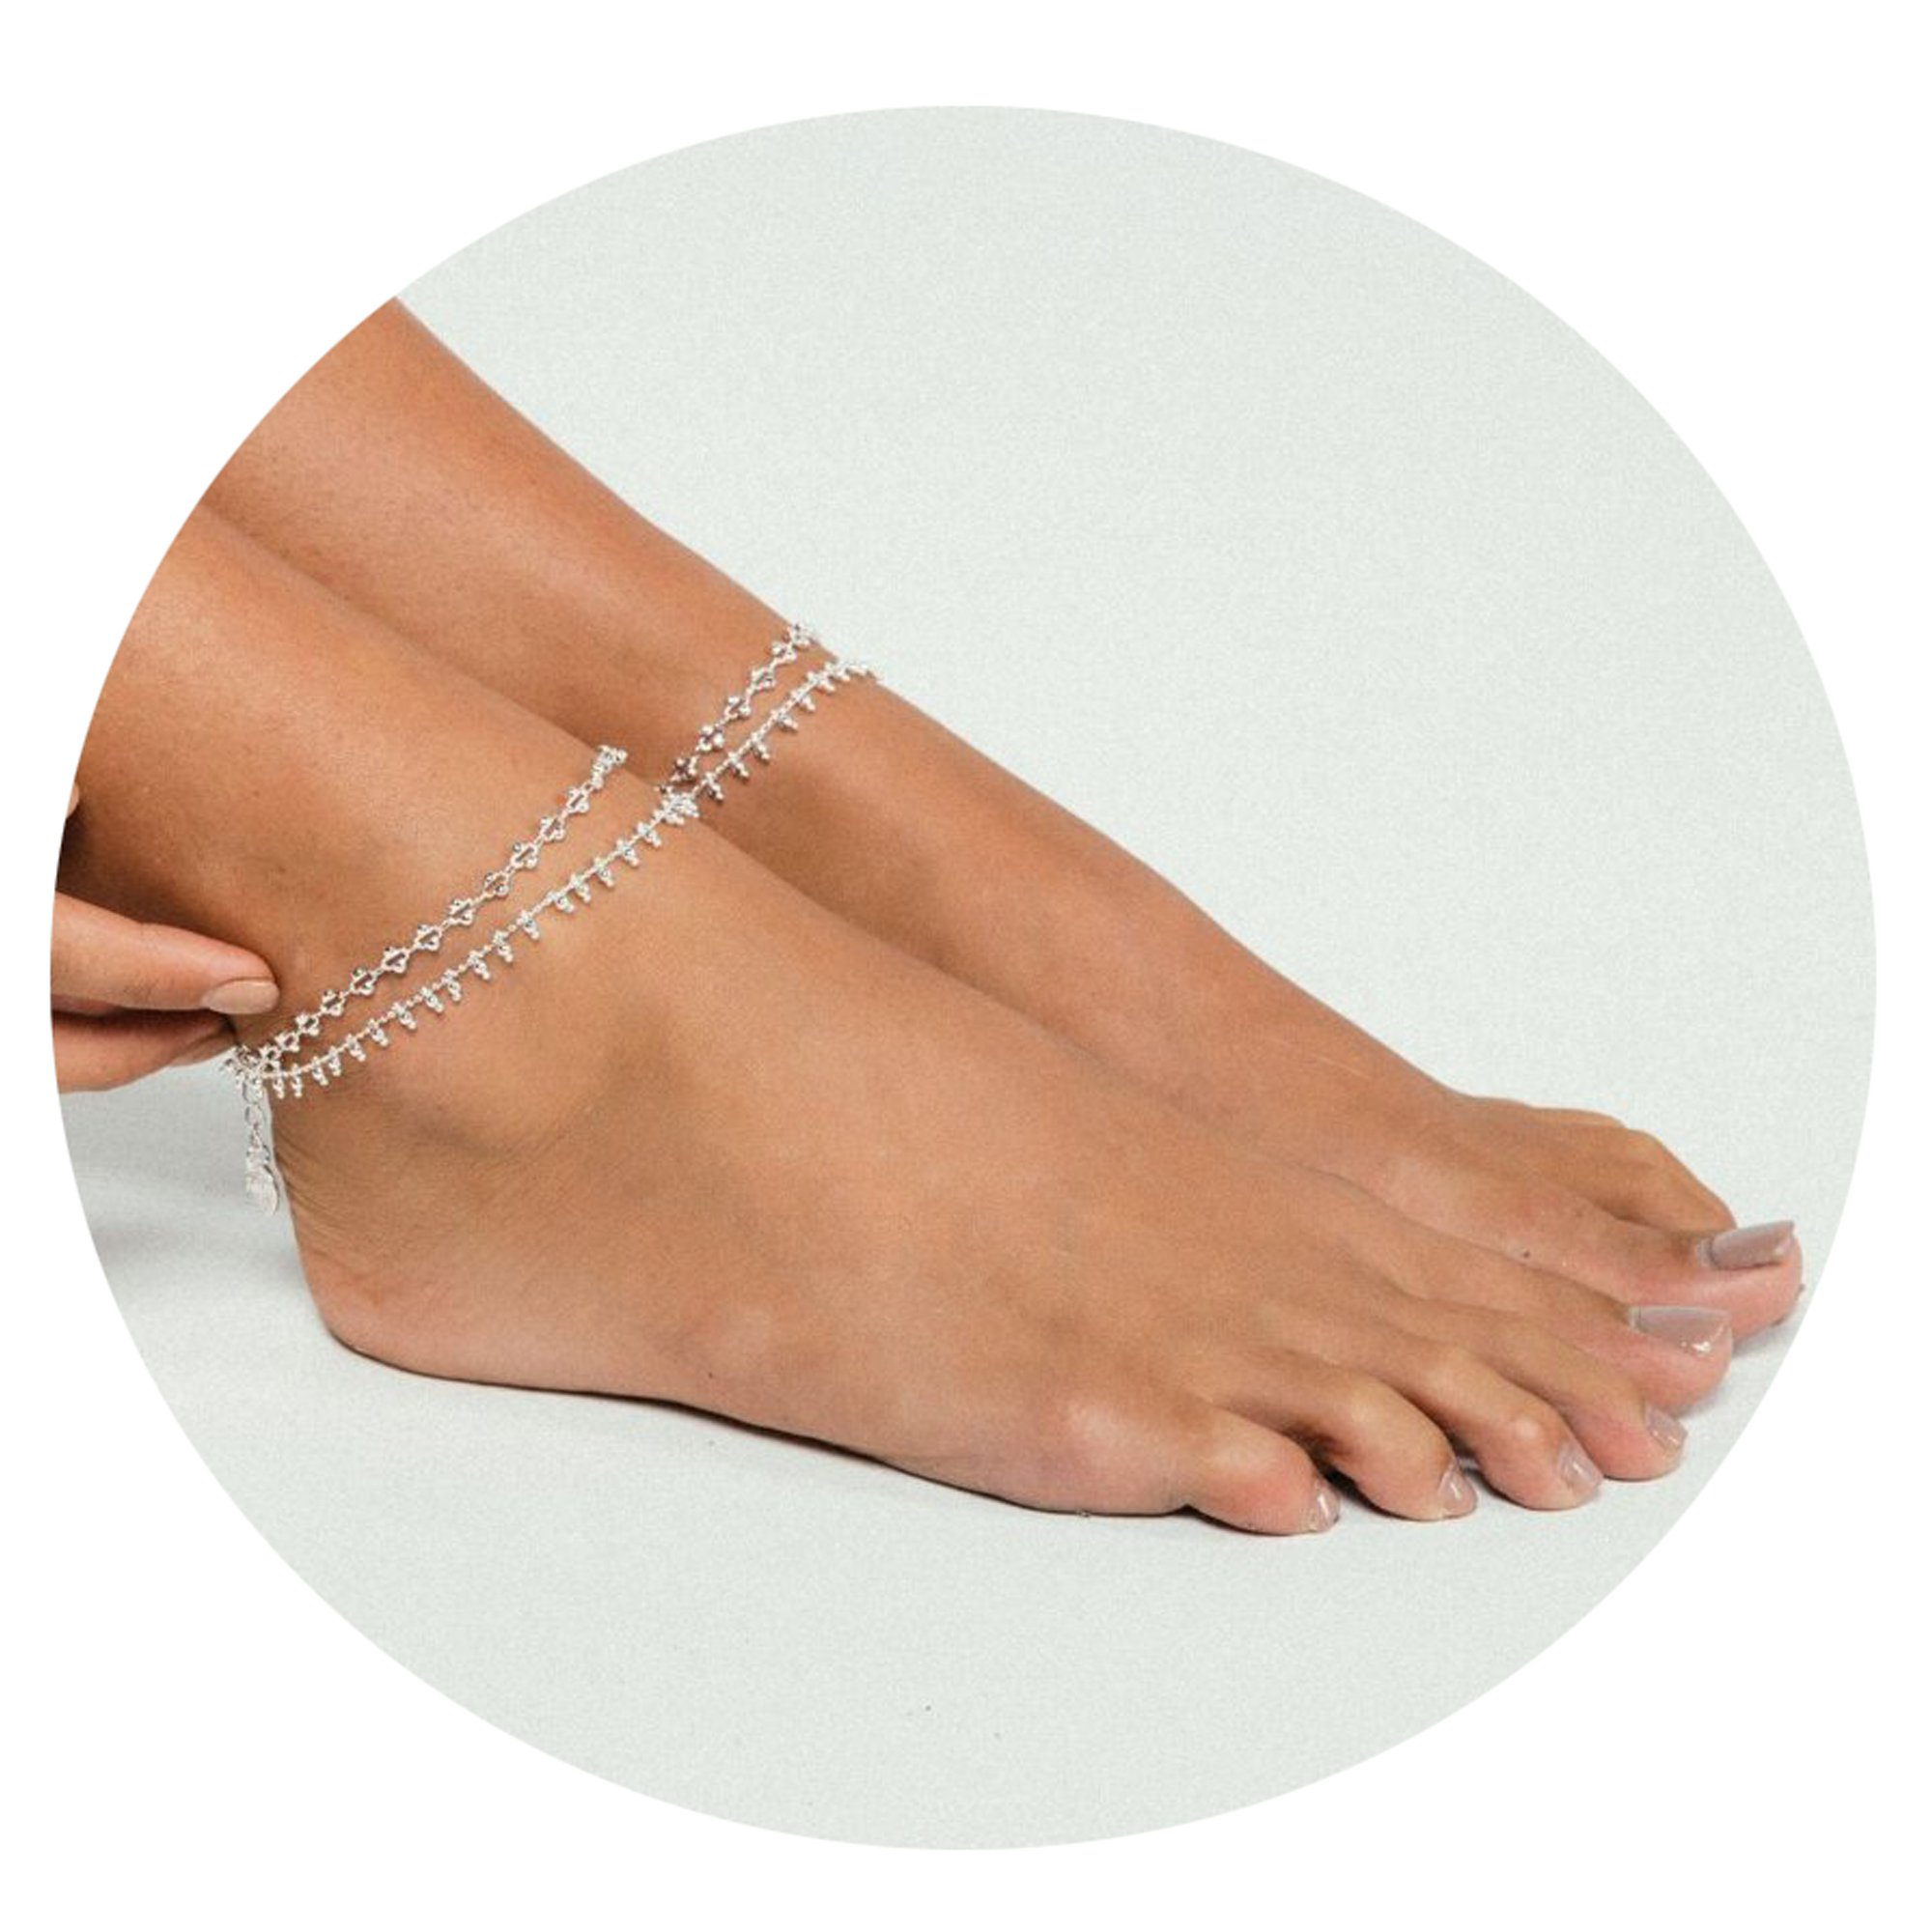 Befettly Women Gold Anklet Delicate Handmade 14k Gold Plated Double Layered Beads Boho Cute Summer Ankle Bracelet Dainty Tassels Beach Foot Chain Ank-layer Bead-SL